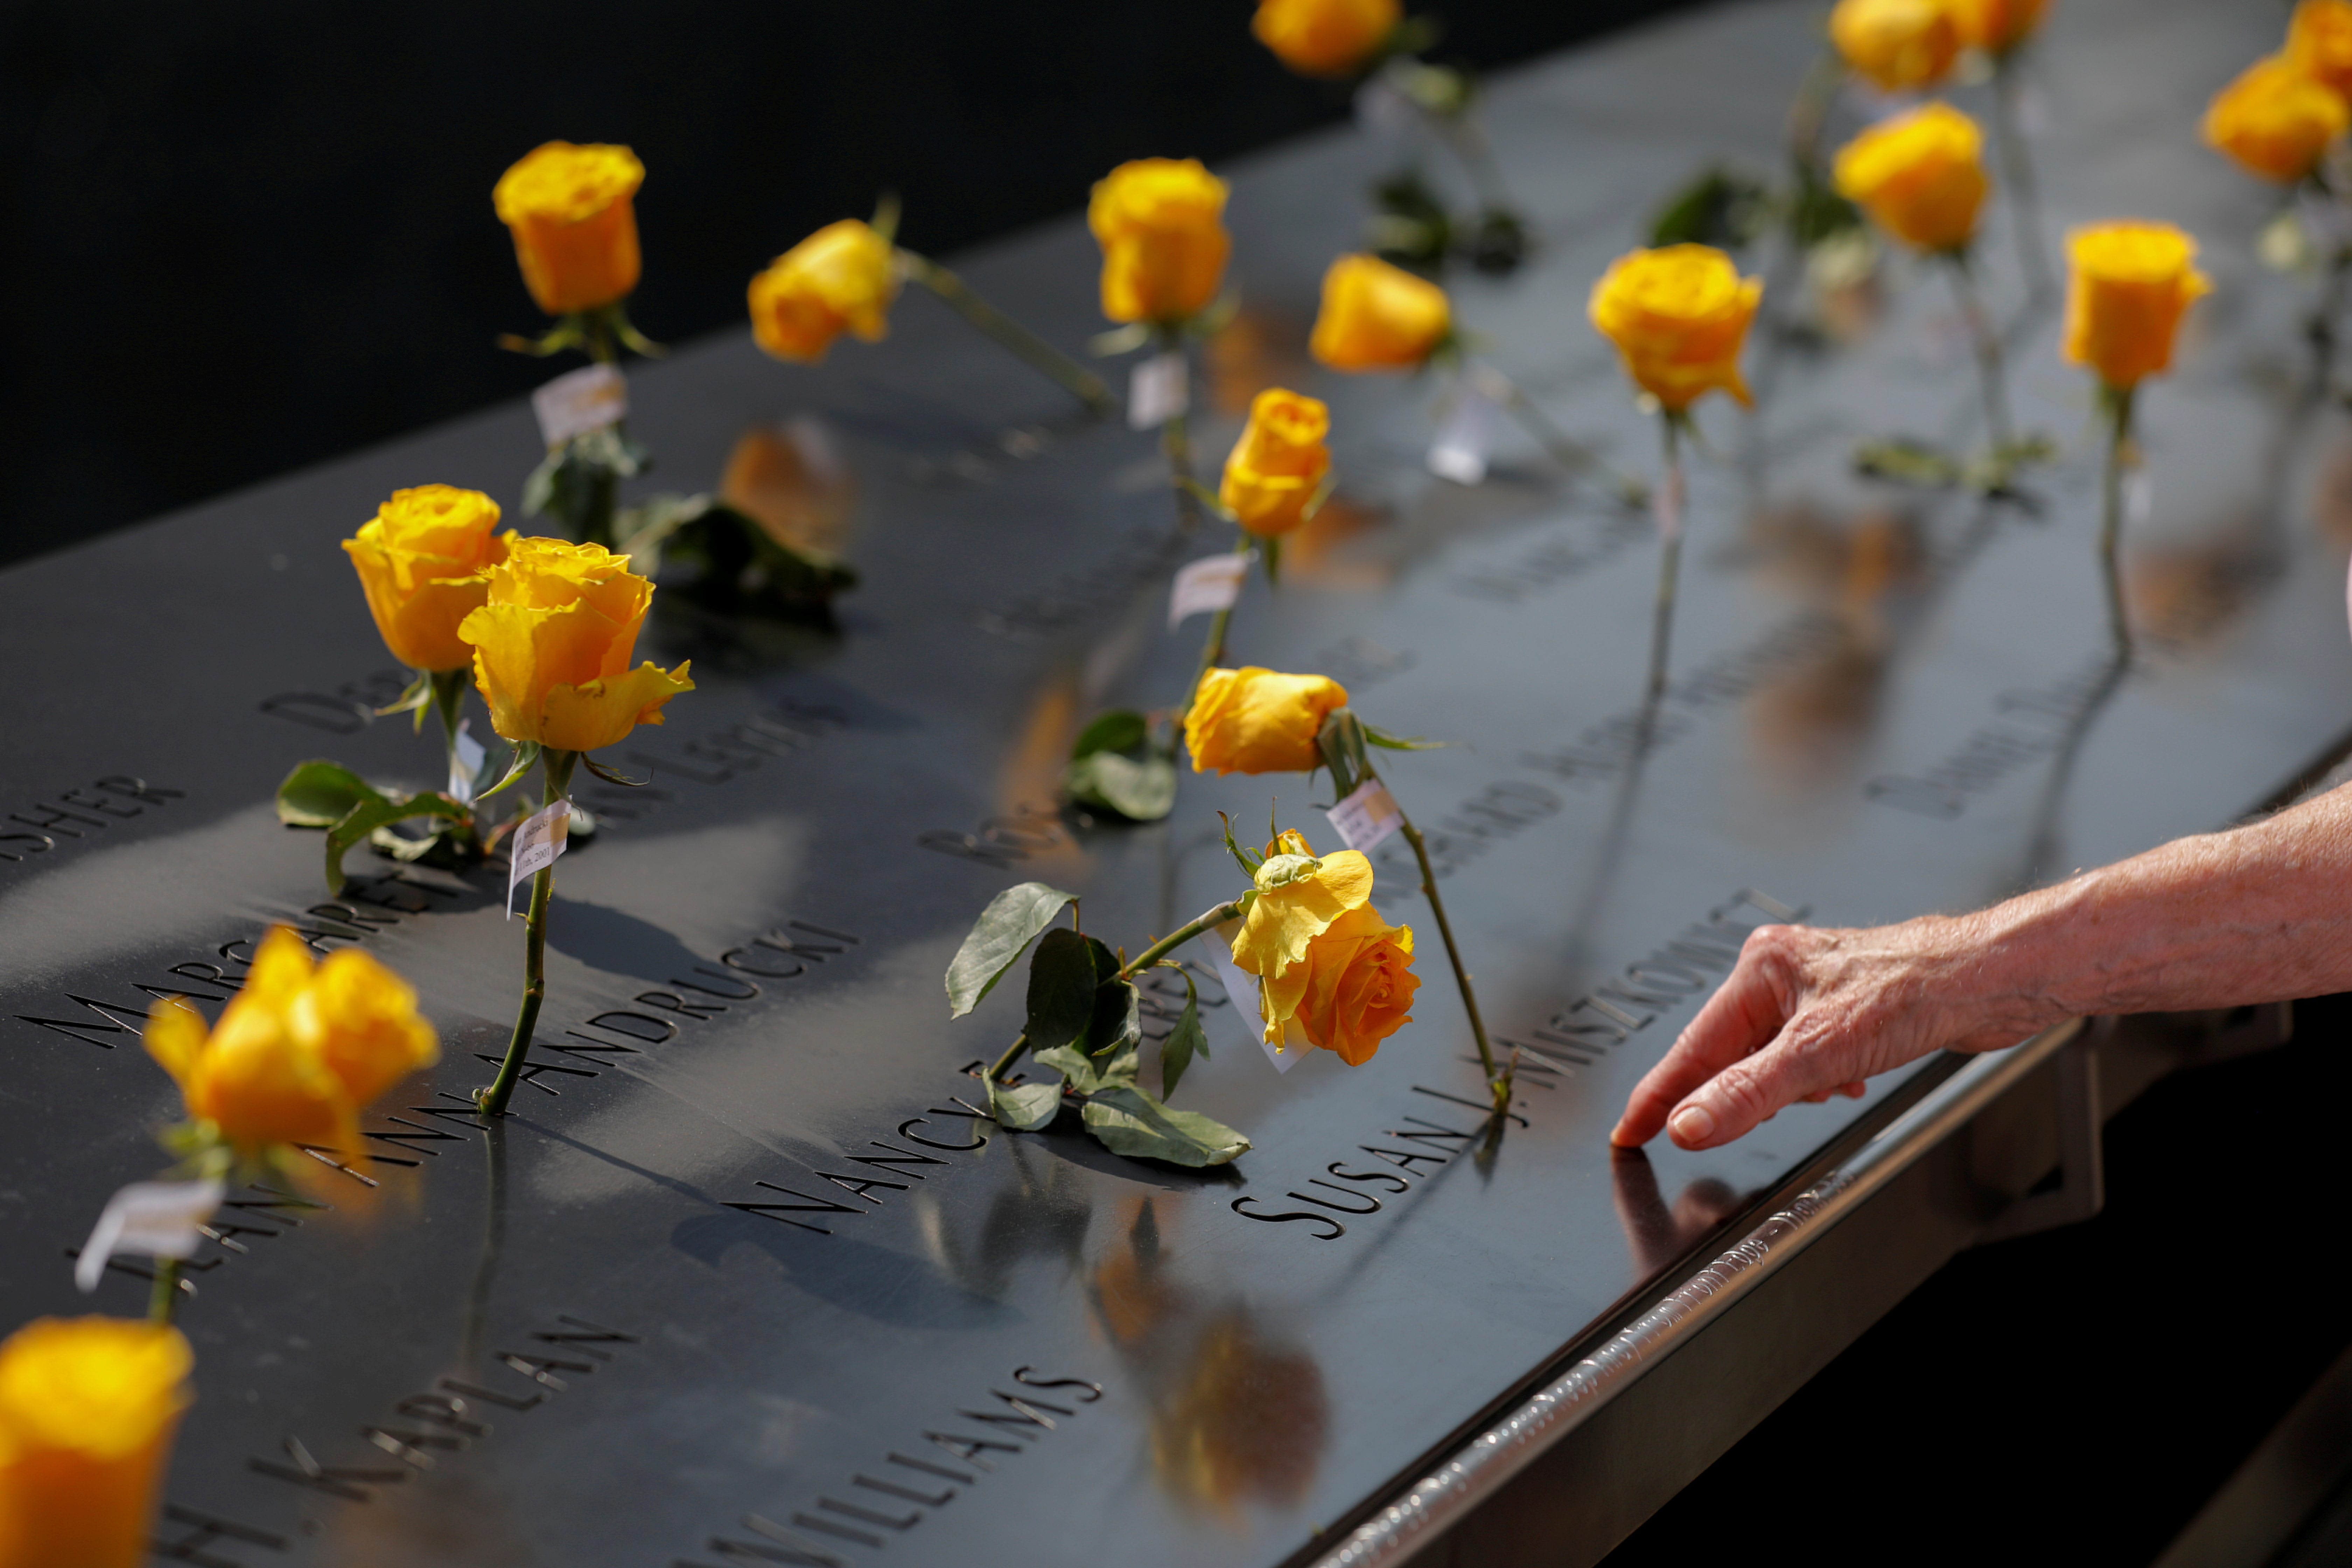 Flowers are seen in the names of victims at the National September 11 Memorial & Museum a month before the 20th anniversary of the September 11 attacks in Manhattan, New York City, U.S., August 11, 2021. REUTERS/Andrew Kelly